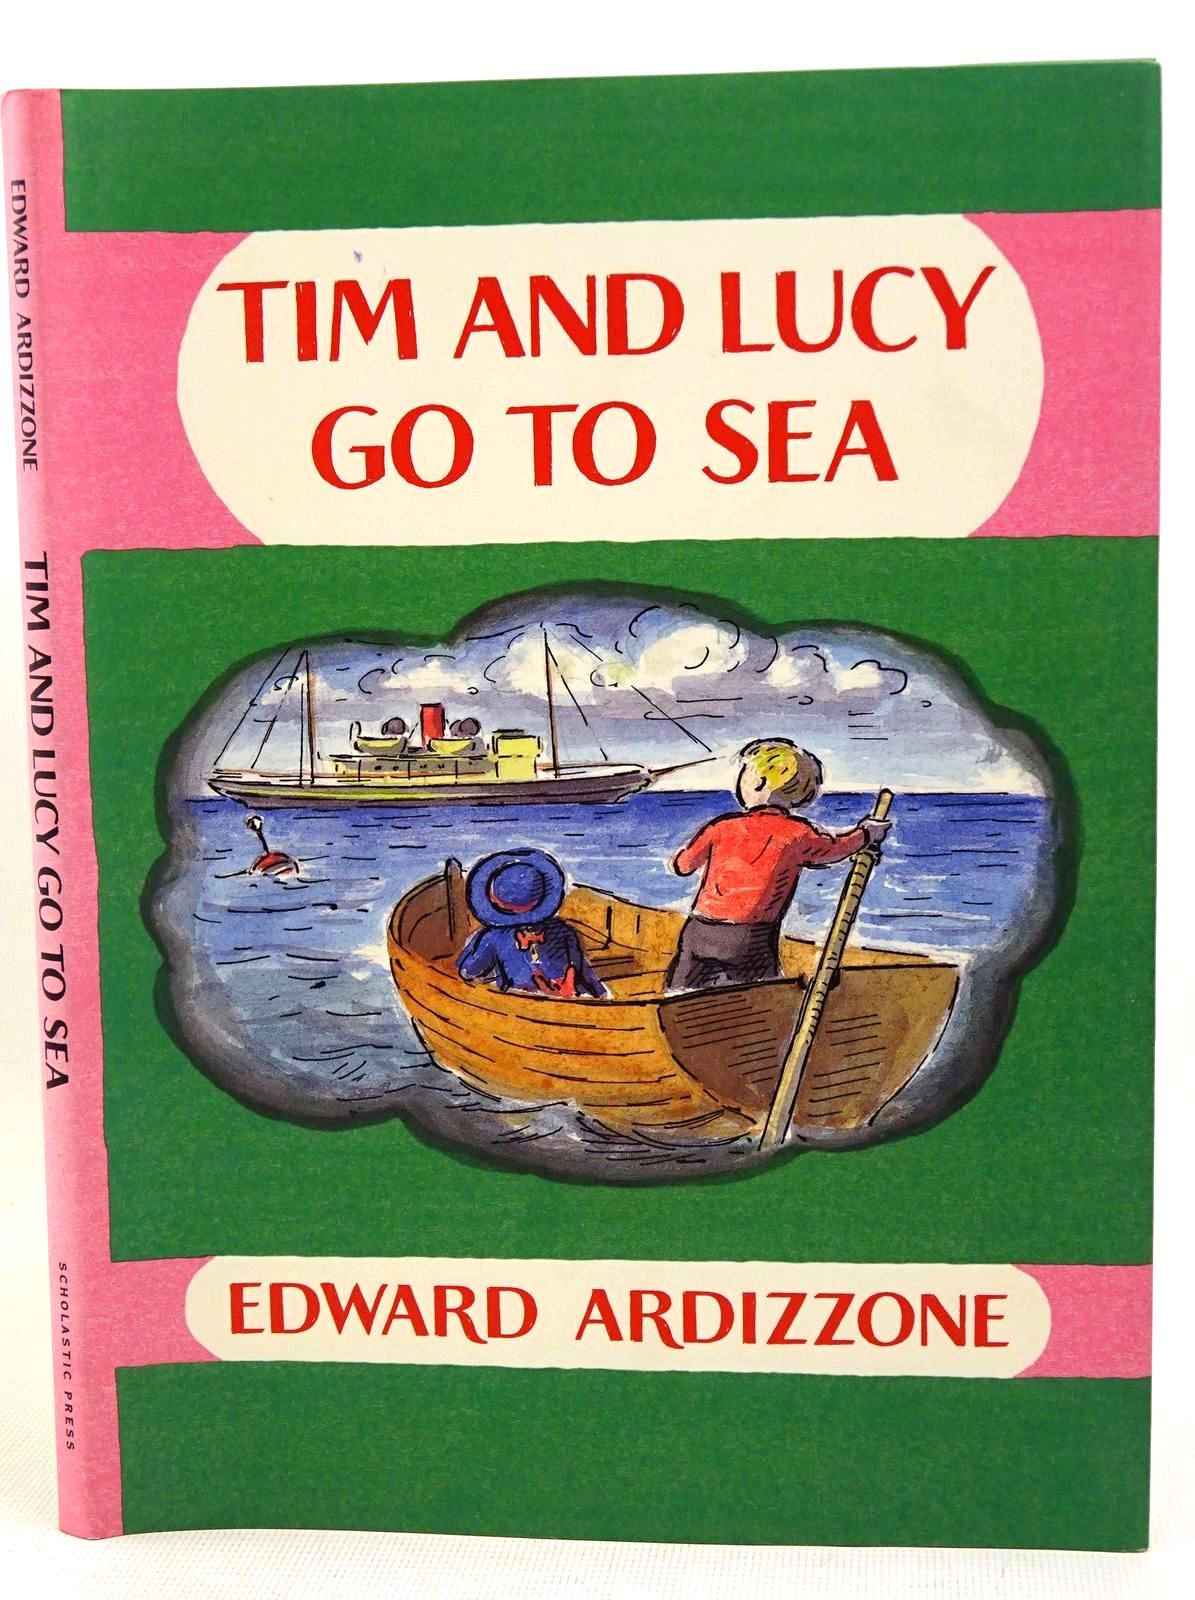 Photo of TIM AND LUCY GO TO SEA written by Ardizzone, Edward illustrated by Ardizzone, Edward published by Scholastic Press (STOCK CODE: 1317592)  for sale by Stella & Rose's Books